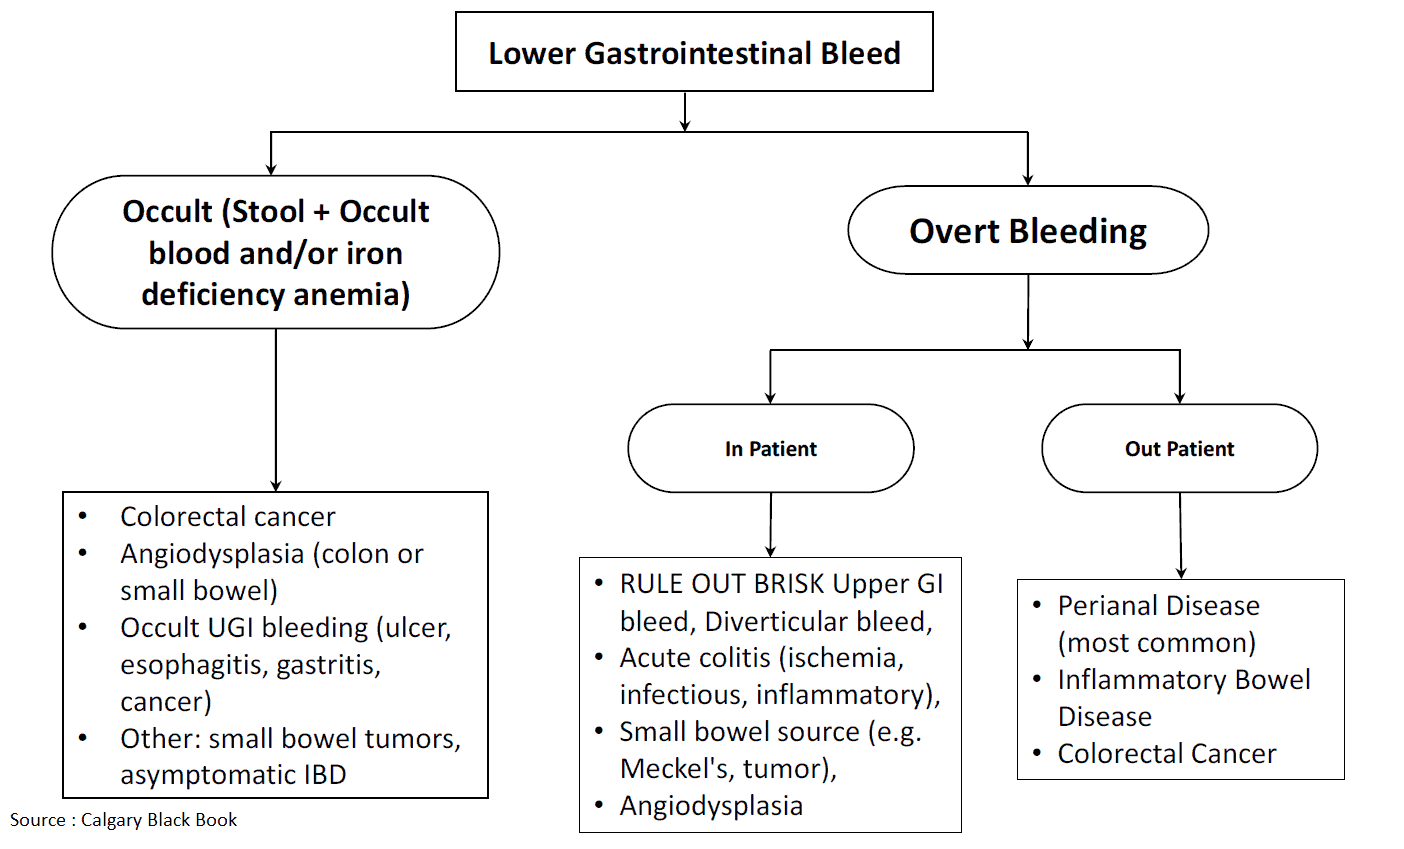 Lower Gastrointestinal Bleed - Causes